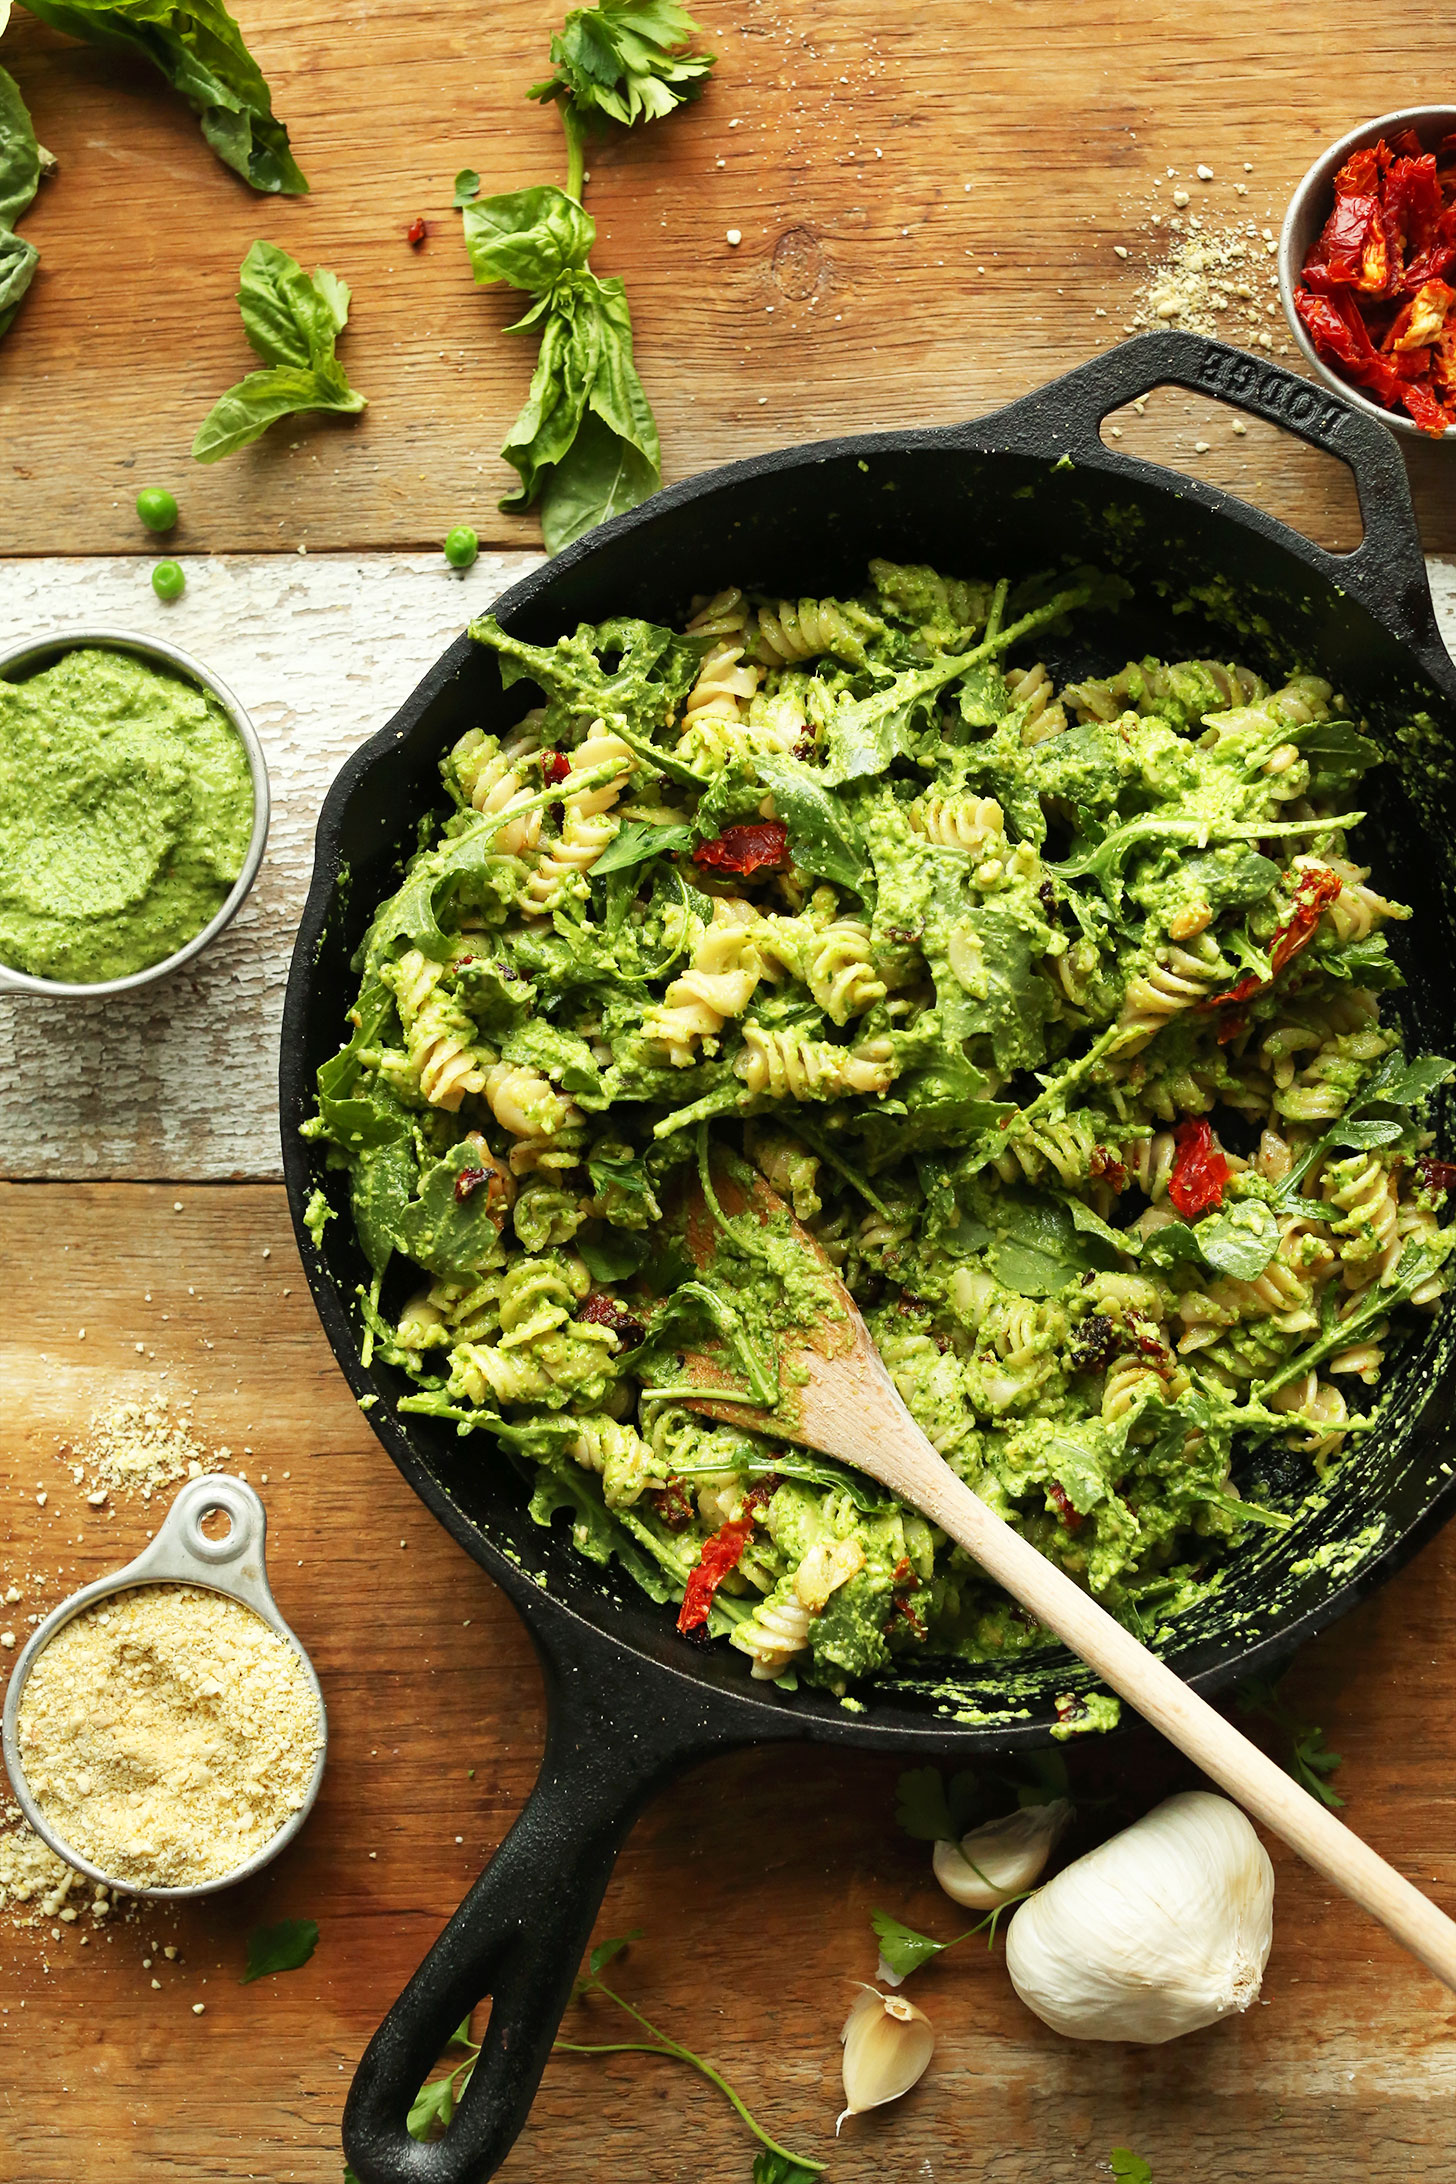 Cast-iron skillet filled with our gluten-free vegan Pea Pesto Pasta